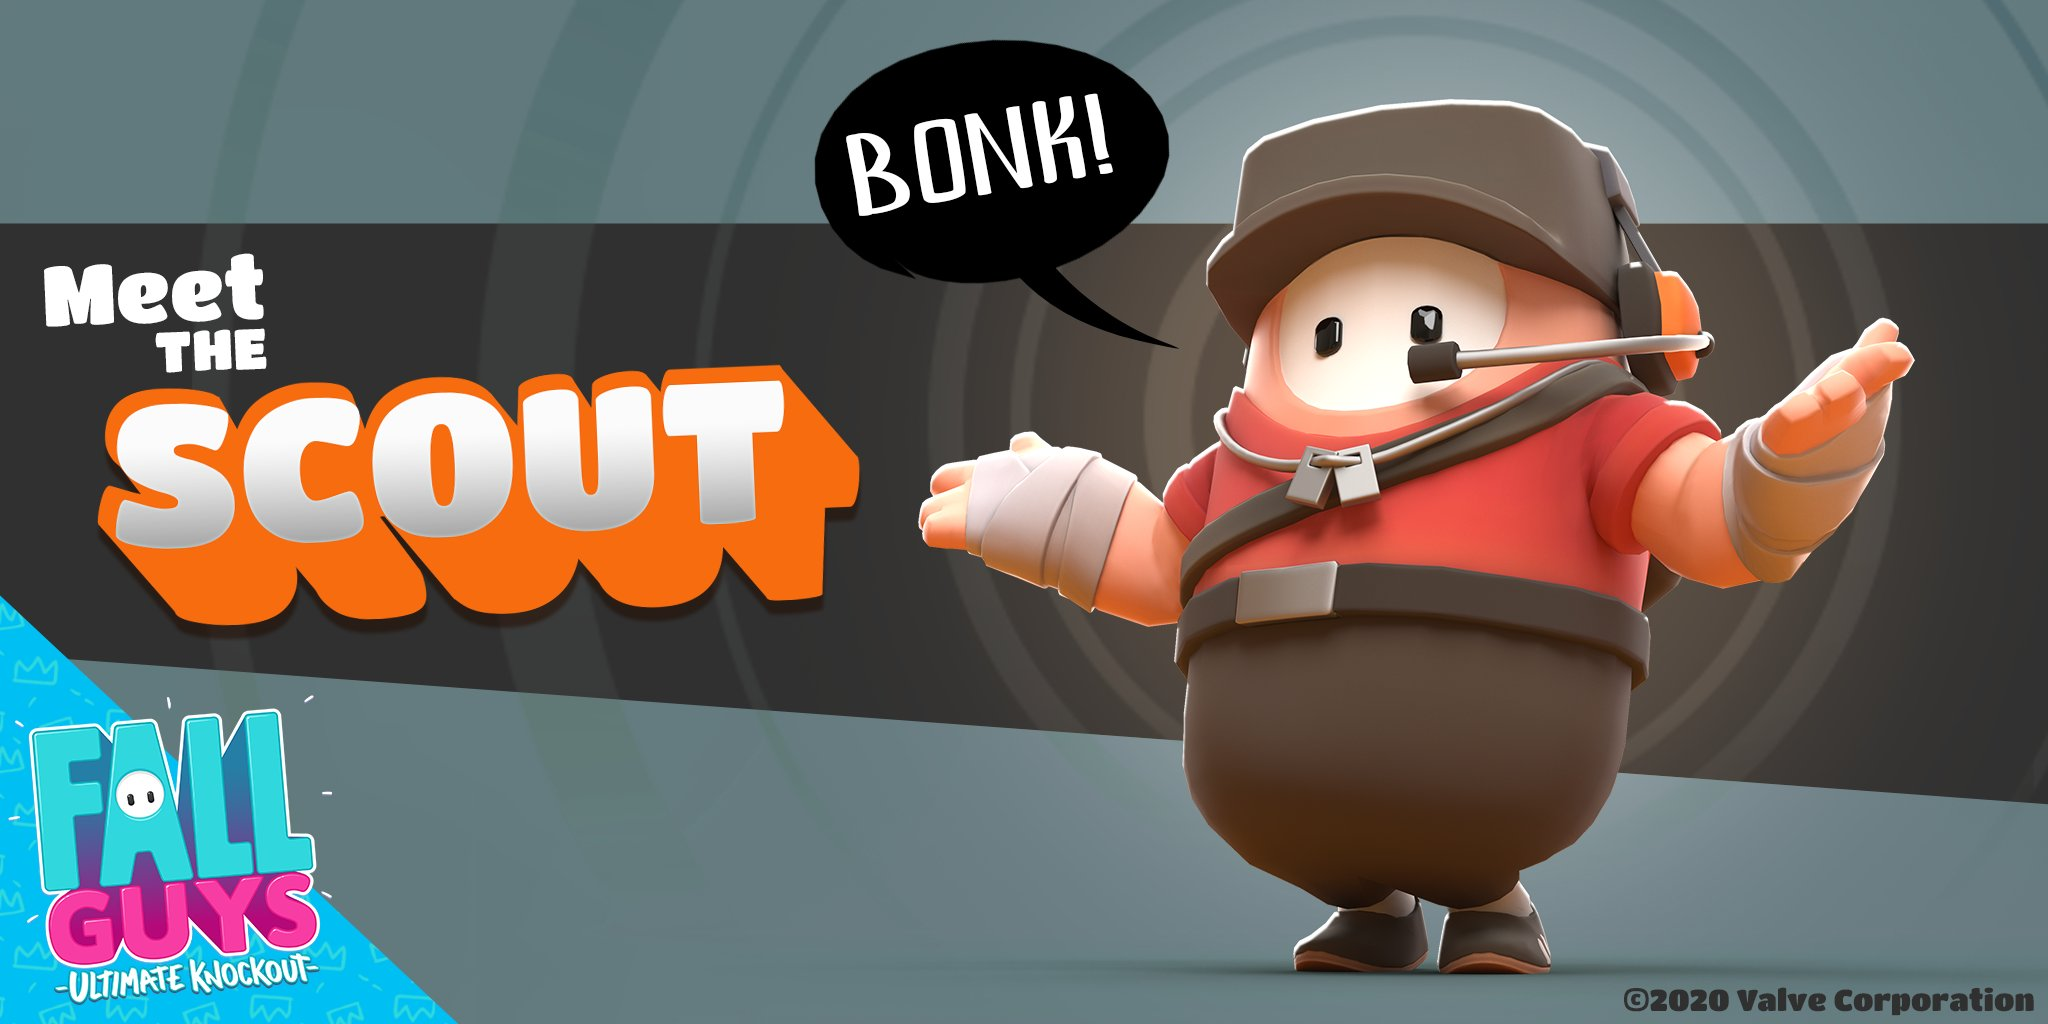 Fall Guys: How to Get Team Fortress 2 Scout Skin